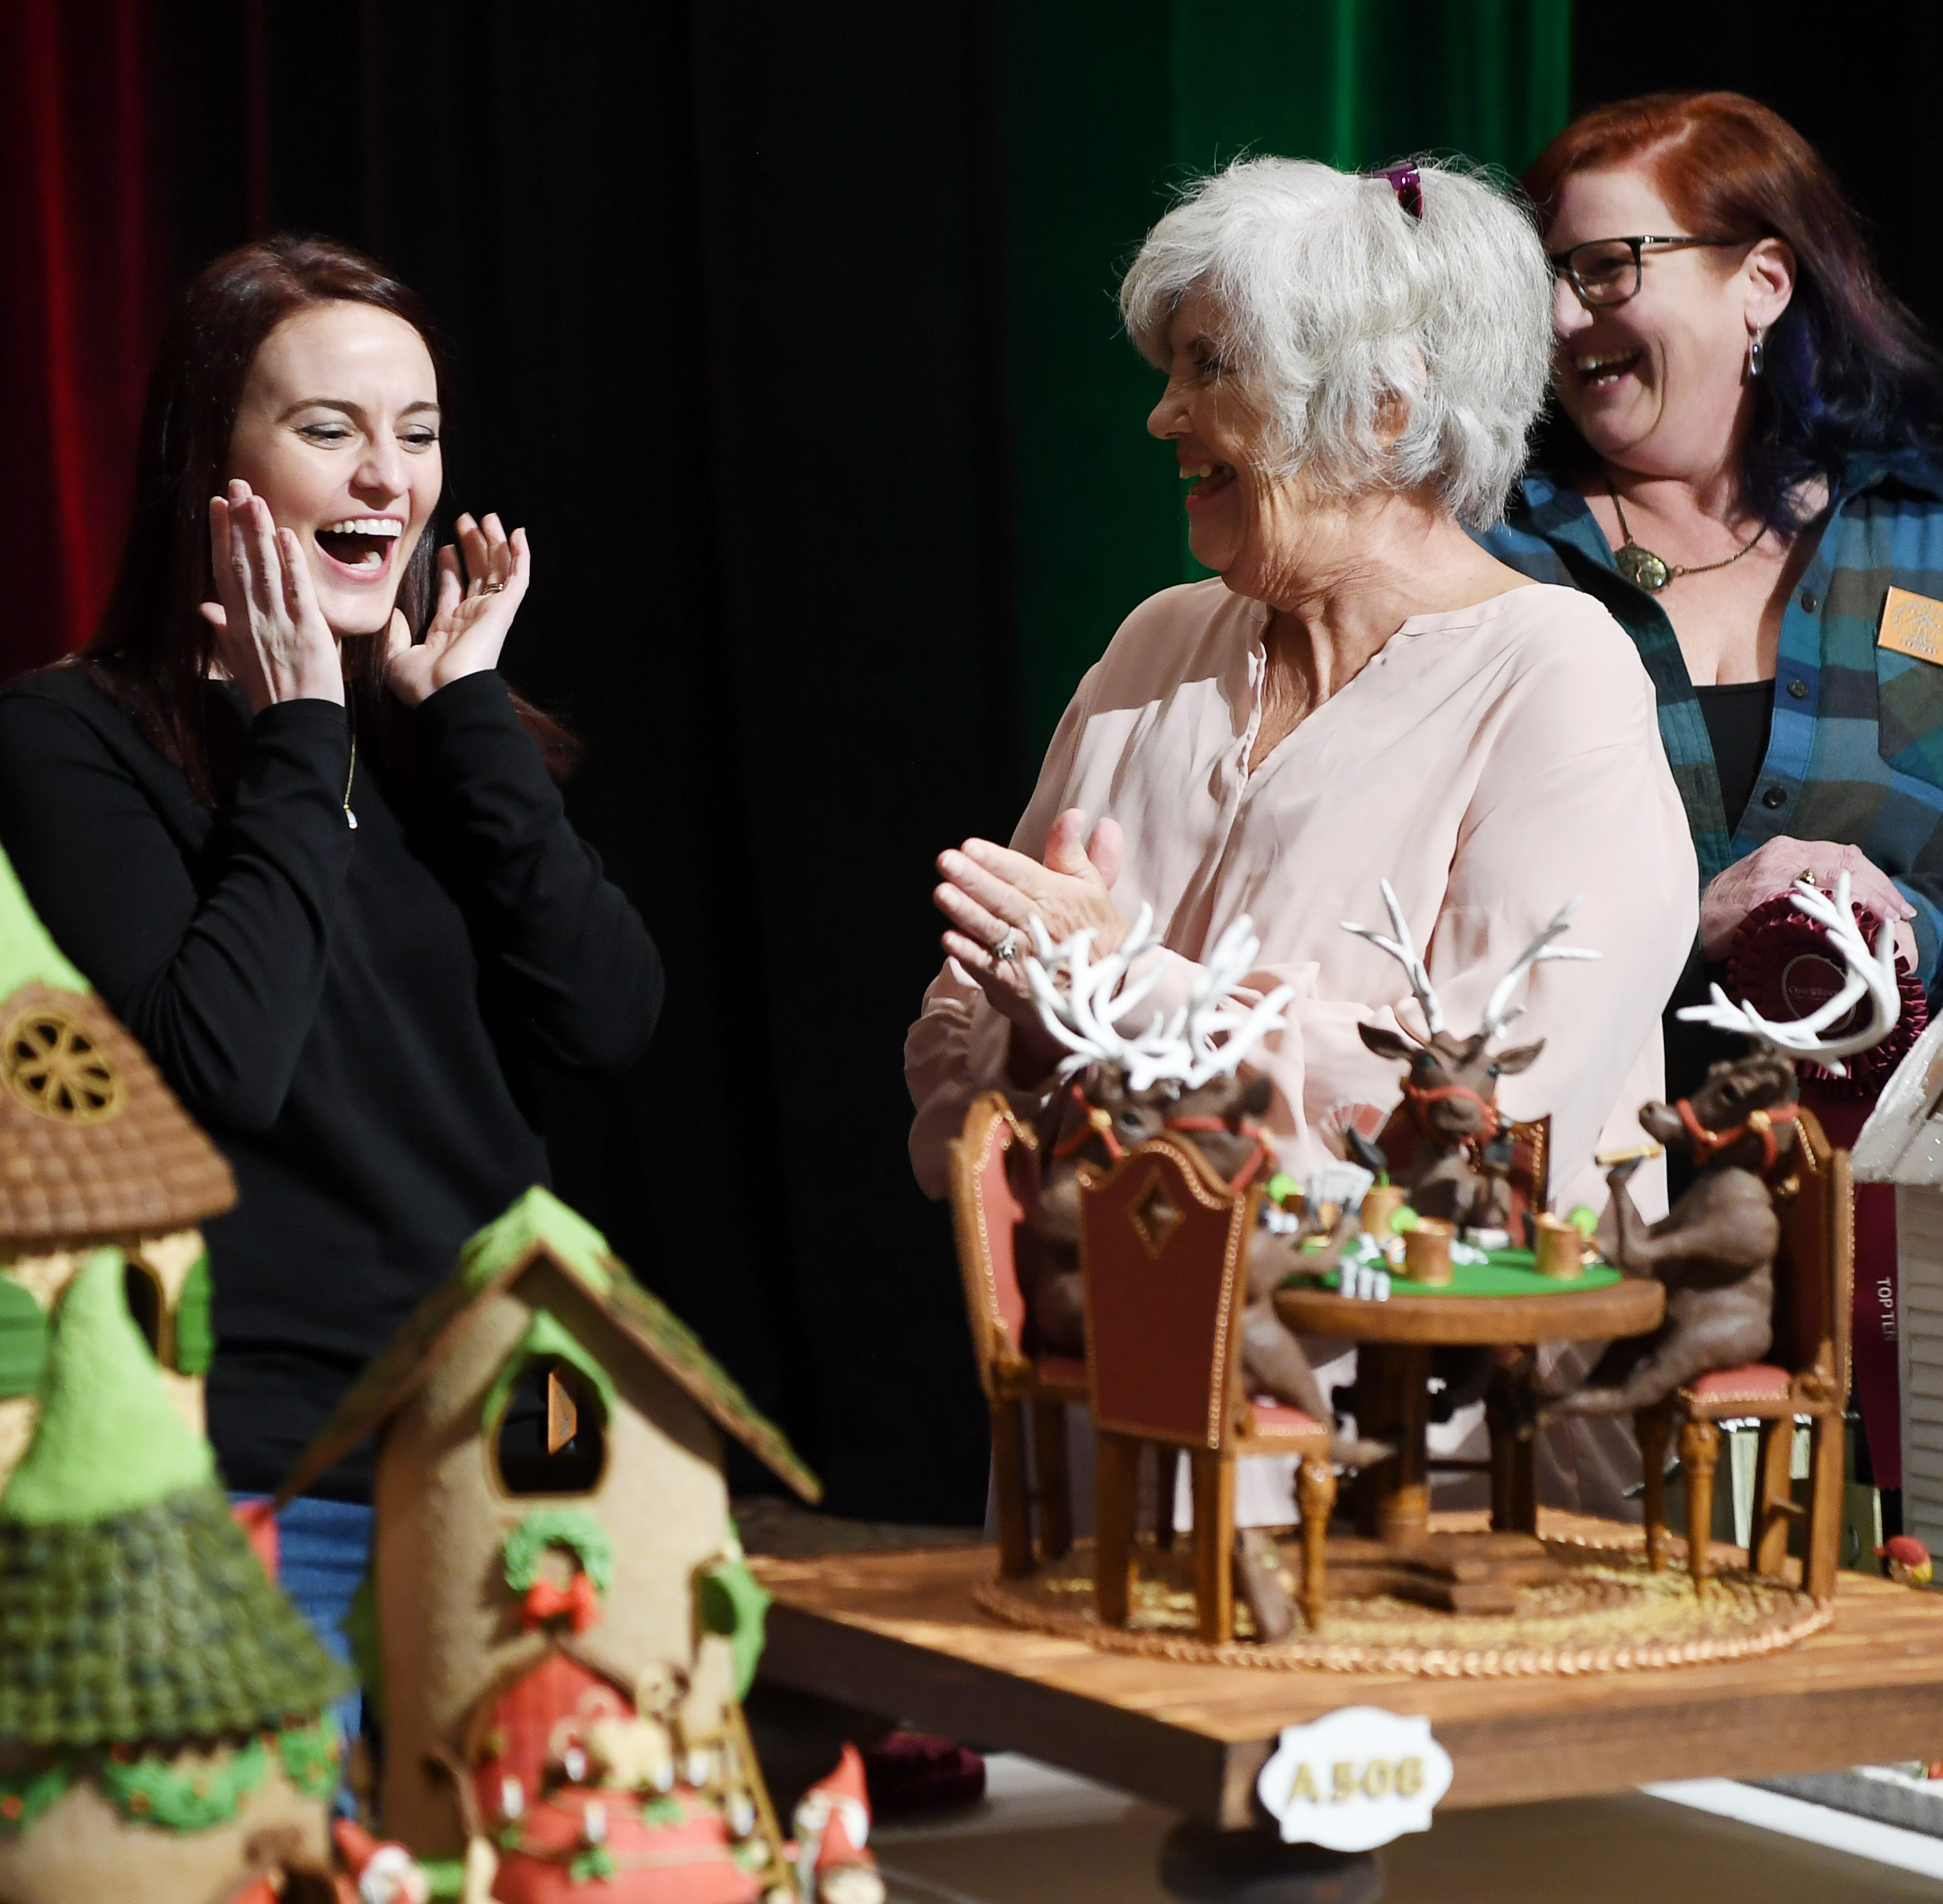 2018 National Gingerbread House Competition: See the winners